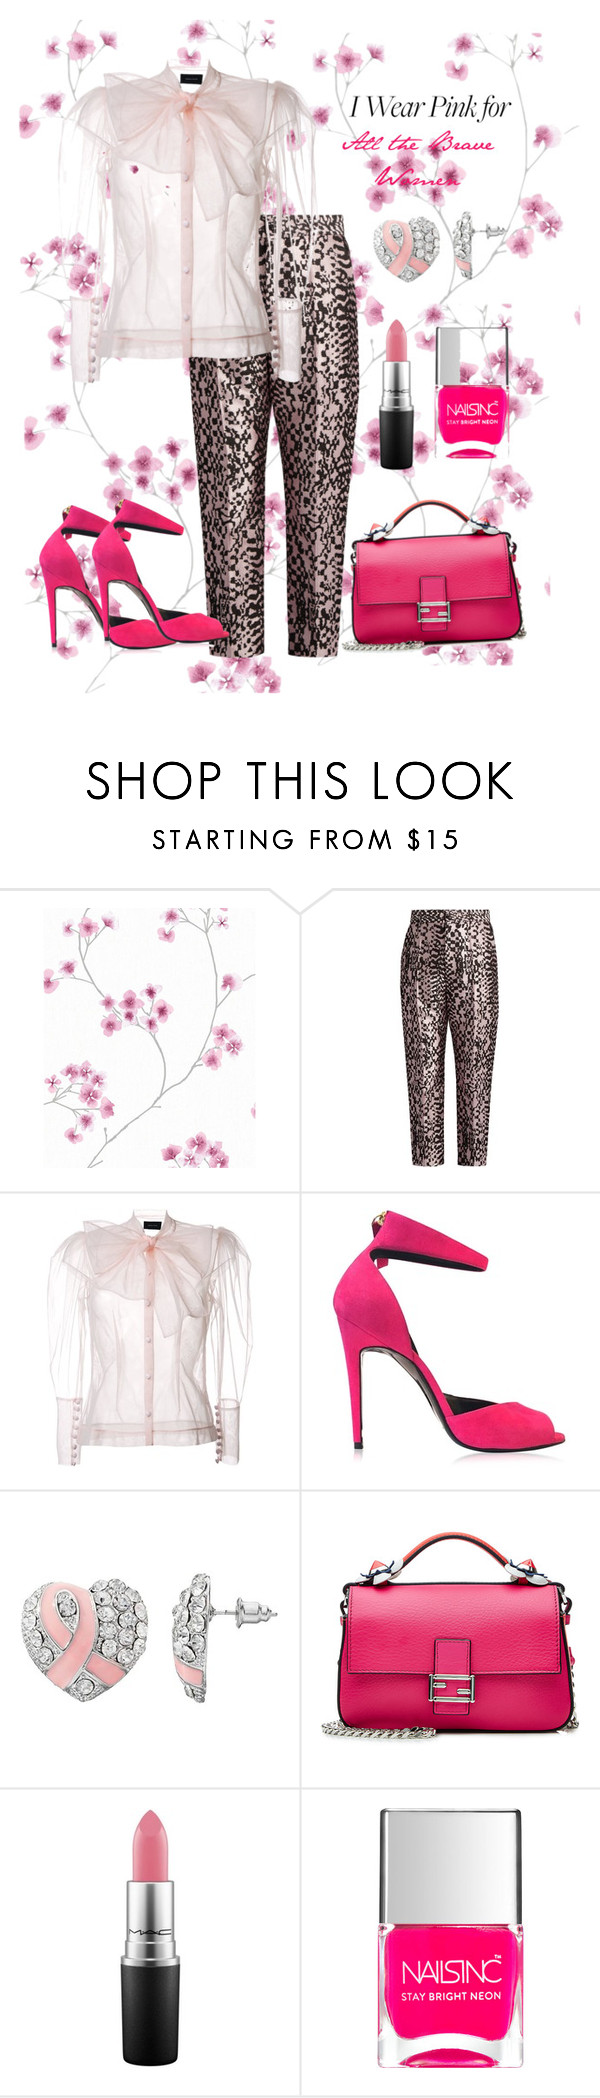 """""""To the Brave Women🌹♀🕯"""" by parnett ❤ liked on Polyvore featuring Haider Ackermann, Simone Rocha, Pierre Hardy, Fendi, MAC Cosmetics, Nails Inc. and IWearPinkFor"""